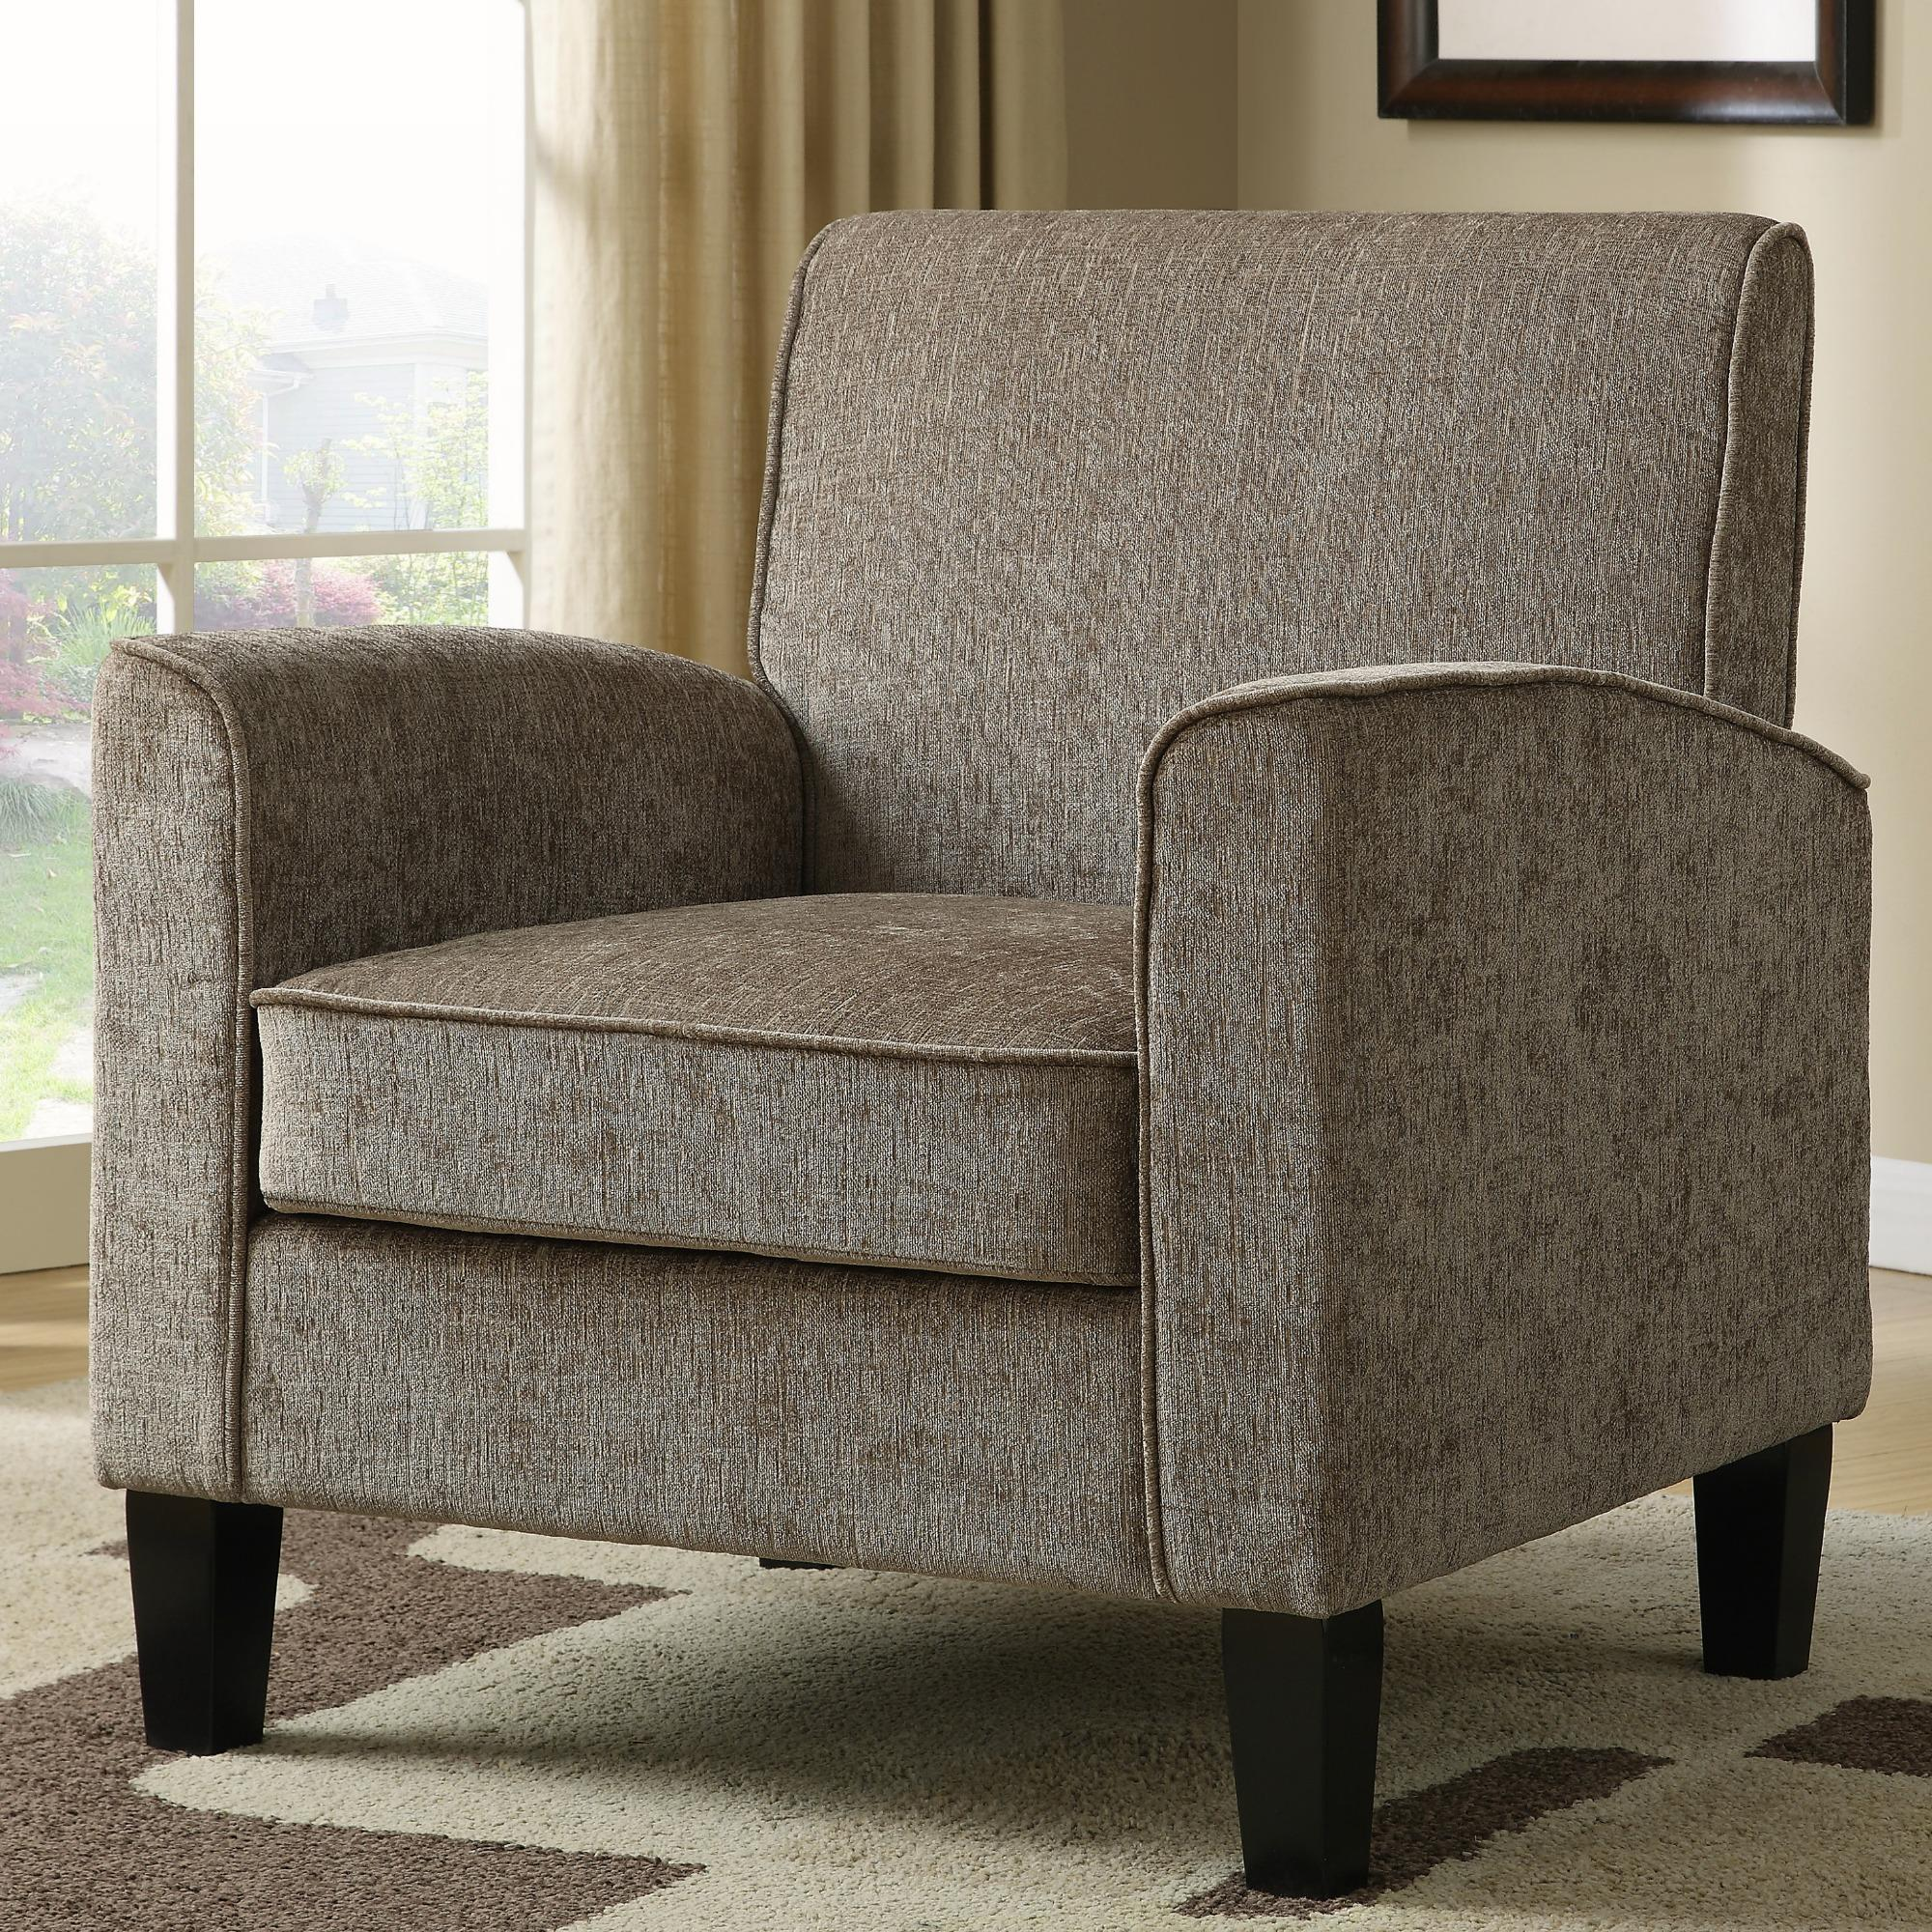 Pulaski Ds 2279 900 5 Paisley Mid Century Modern Upholstered Accent Living Room Chair Taupe